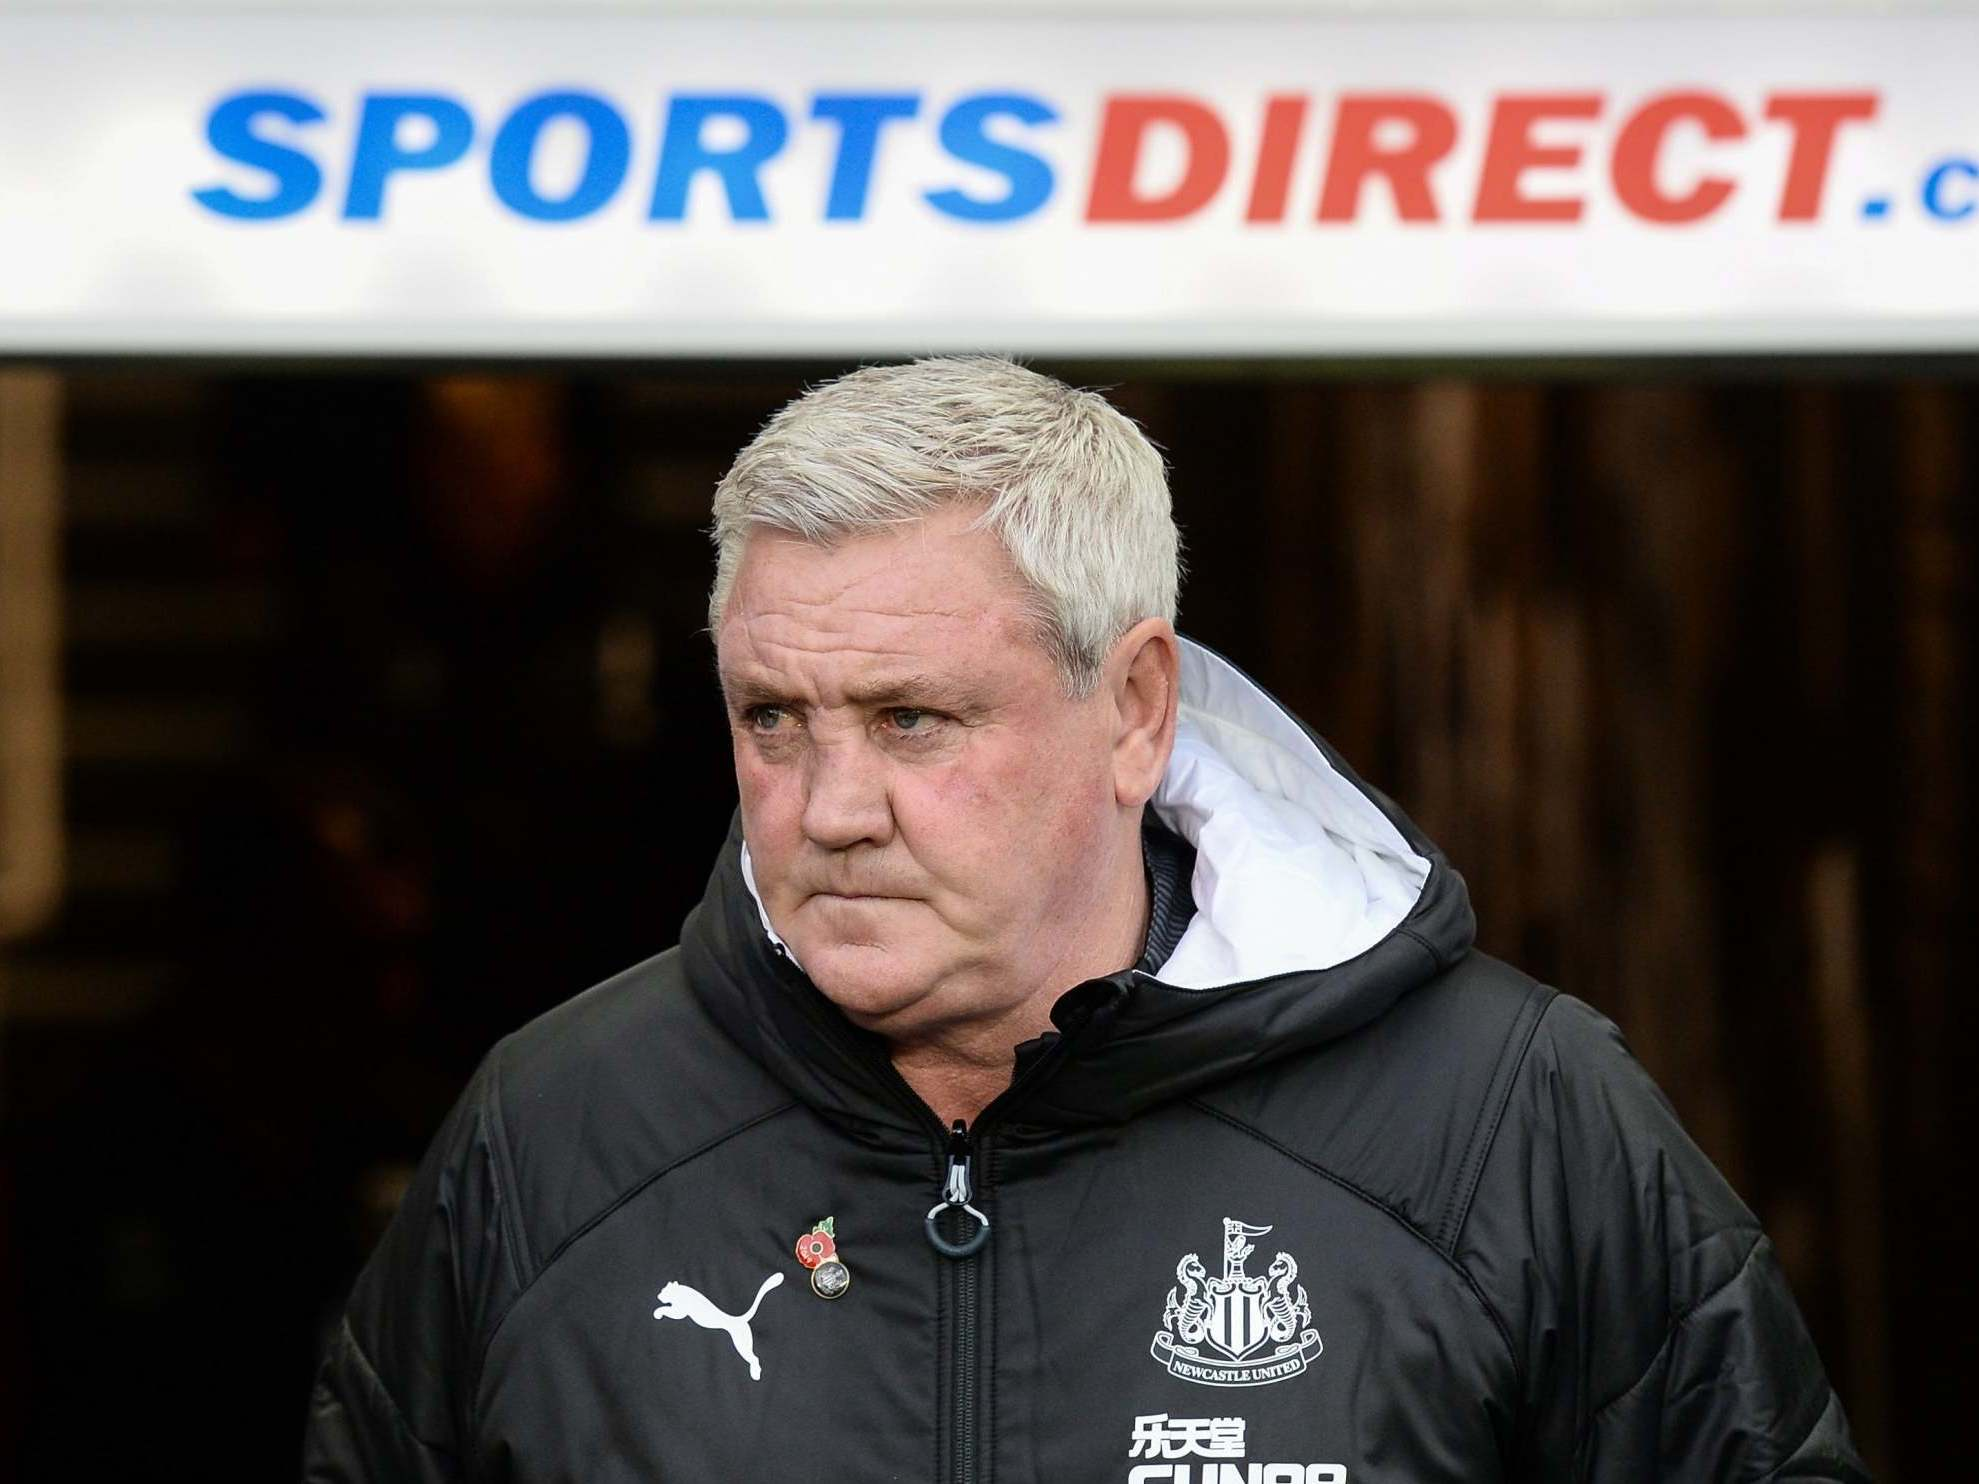 Newcastle: Steve Bruce still scarred by 'unsavoury' cabbage-throwing incident at Aston Villa